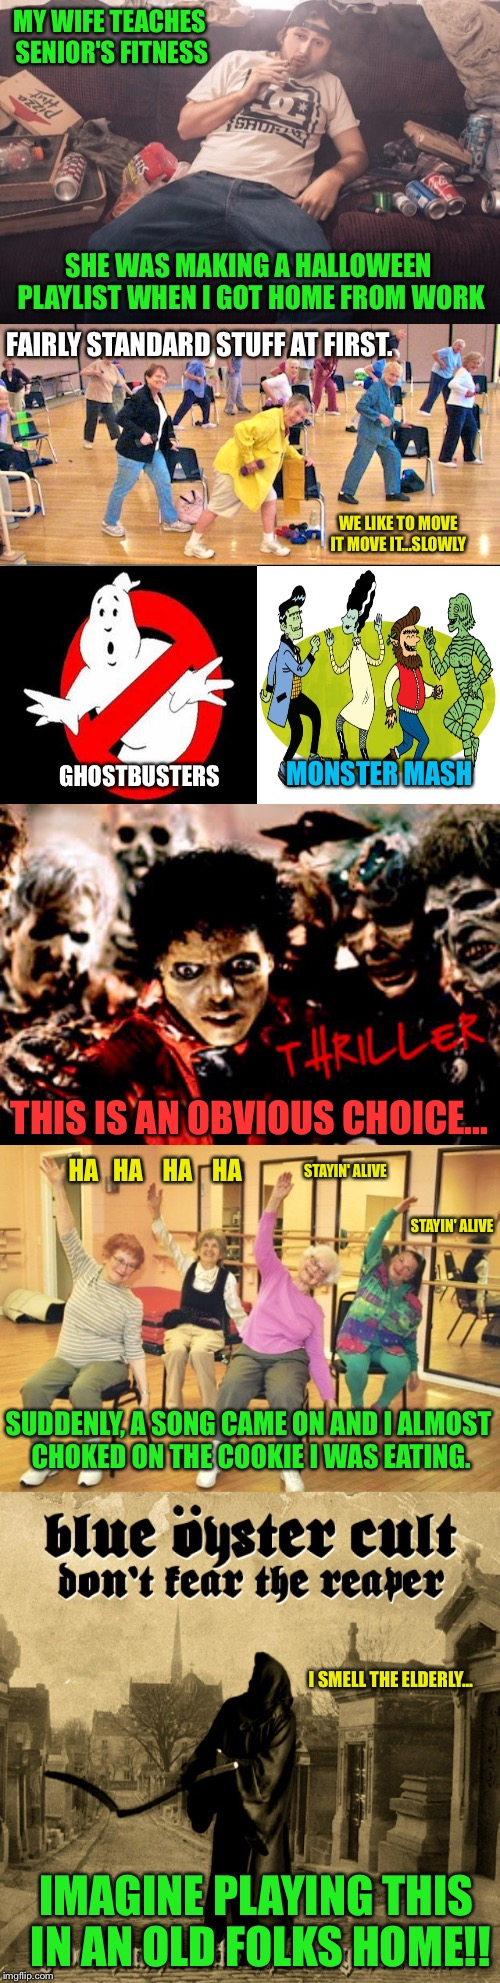 True Story, This Happened Yesterday | MY WIFE TEACHES SENIOR'S FITNESS SHE WAS MAKING A HALLOWEEN PLAYLIST WHEN I GOT HOME FROM WORK GHOSTBUSTERS MONSTER MASH THIS IS AN OBVIOUS  | image tagged in halloween,thriller,ghostbusters,monsters,elderly,fitness | made w/ Imgflip meme maker